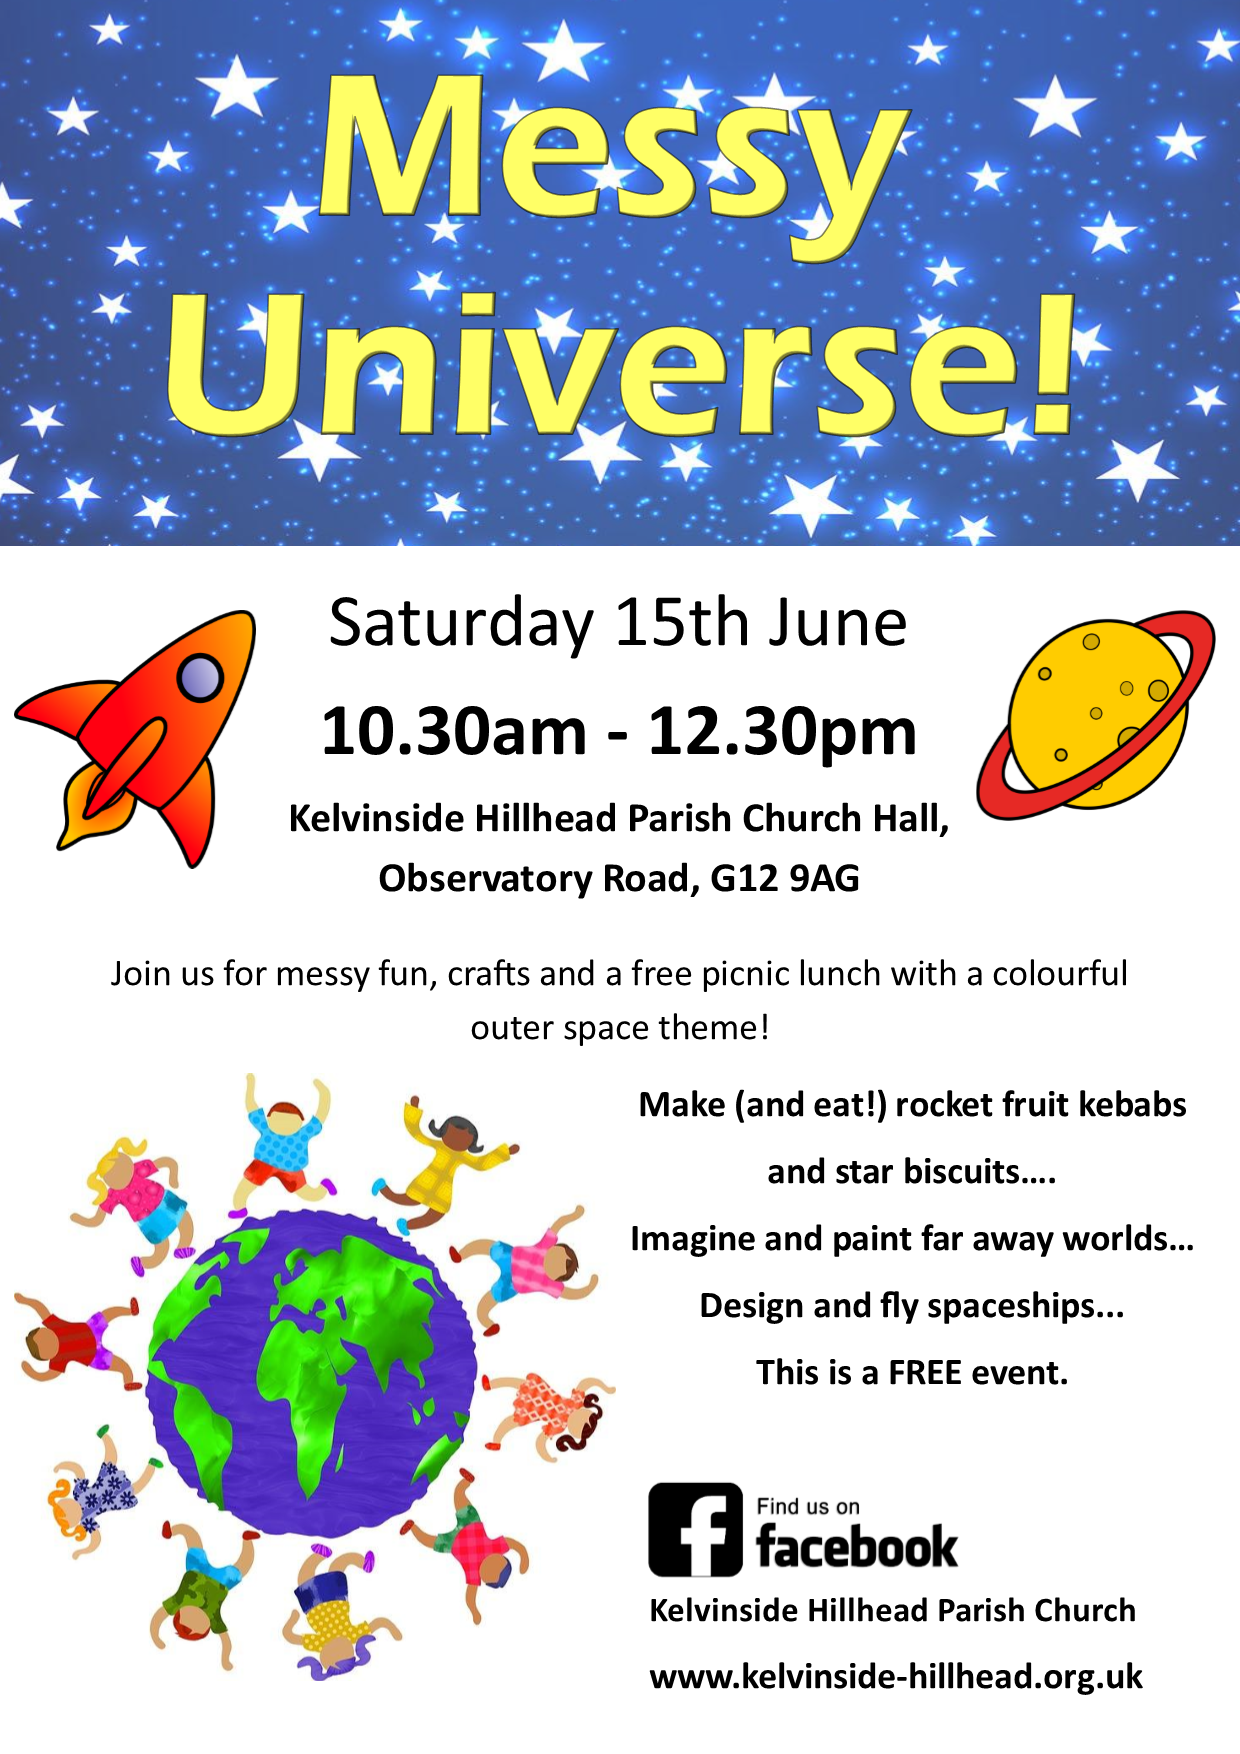 Messy Universe! Space-themed craft and baking activities. Free event, all welcome.